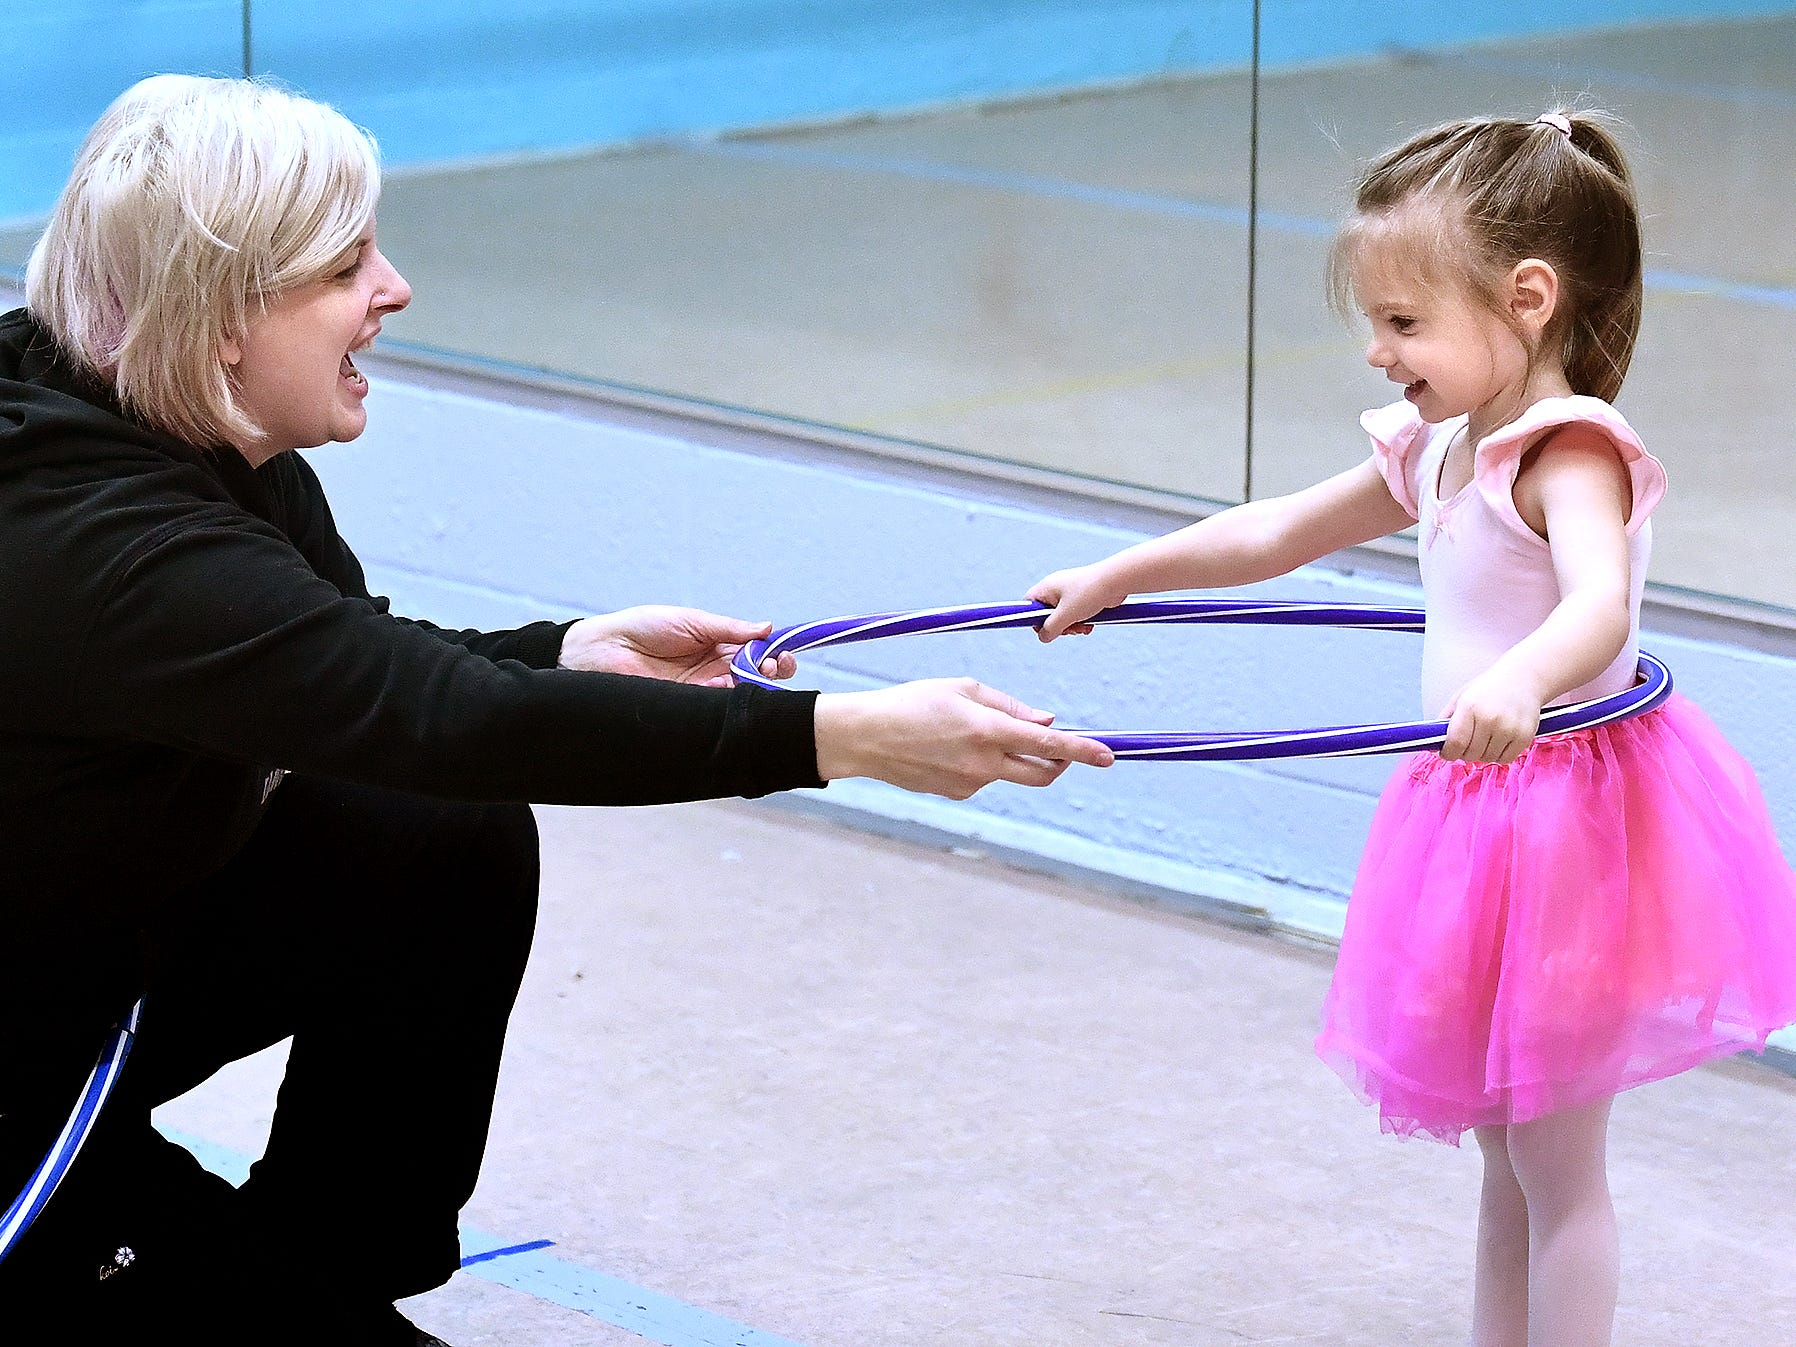 Instructor Niki Zengerly works with Aundrea Baughman, 3, of Dallastown, during the Twinkle Babies class at Greater York Dance Thursday, April 4, 2019. The four-week program, for children aged 2 to 4, is part of the Twinkle Star Dance Program for early childhood dancers. Bill Kalina photo